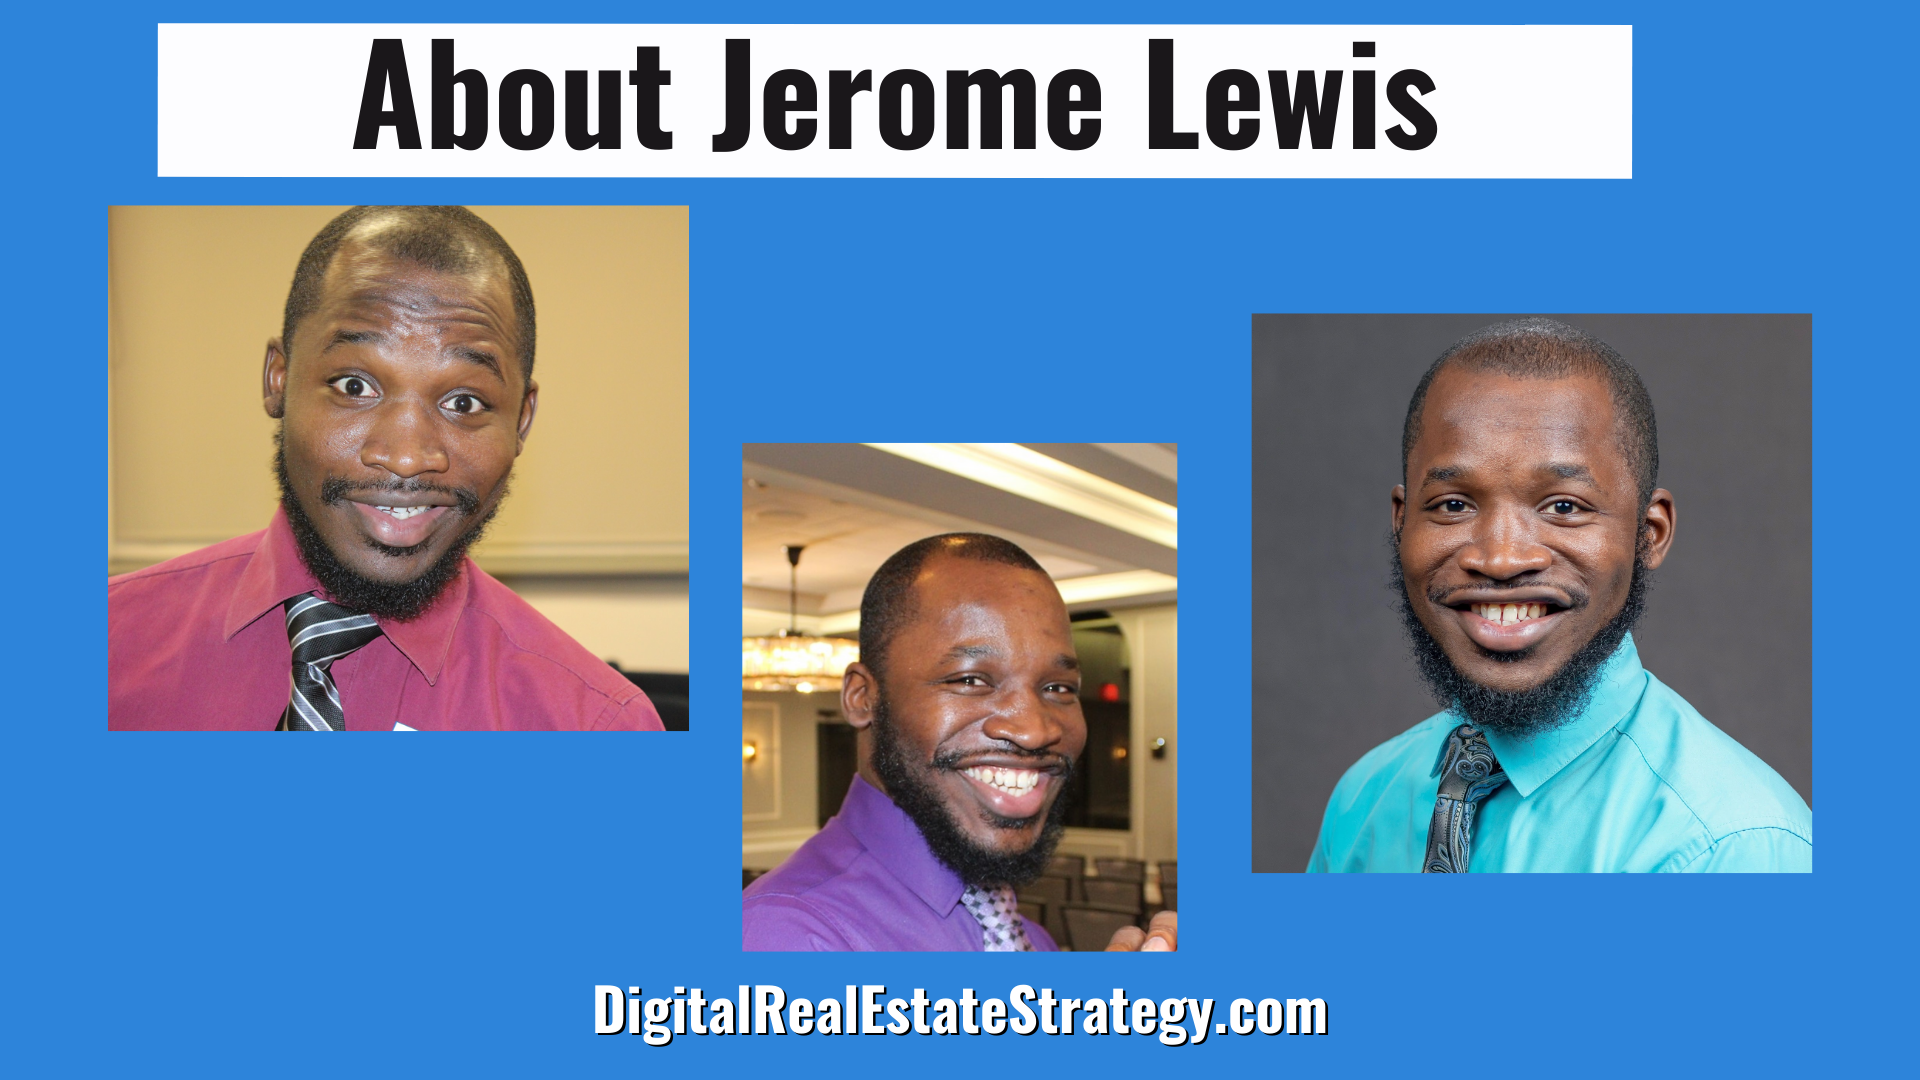 About Jerome Lewis